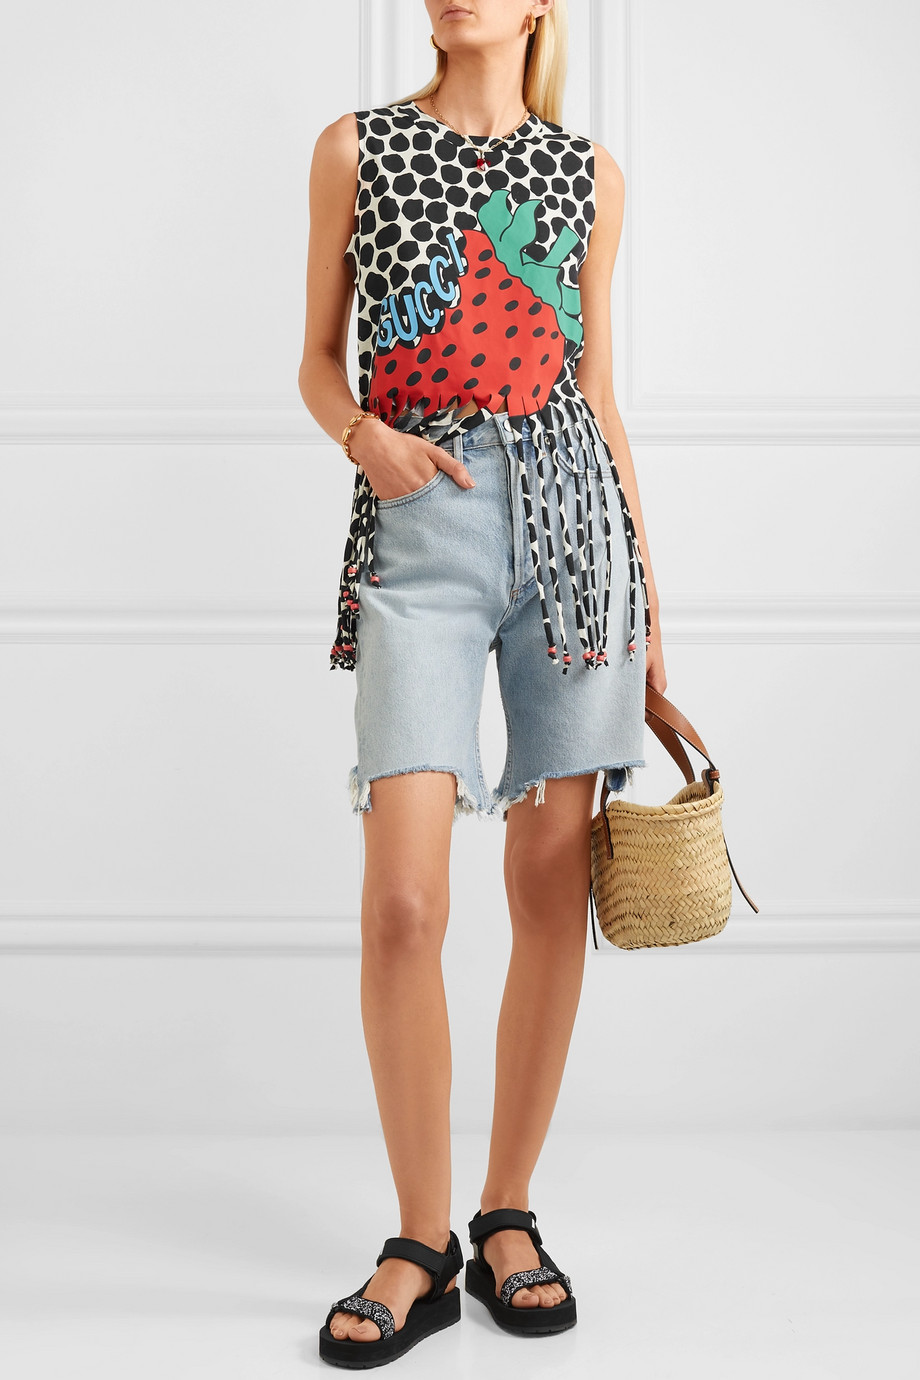 Gucci Fringed printed cotton-jersey top